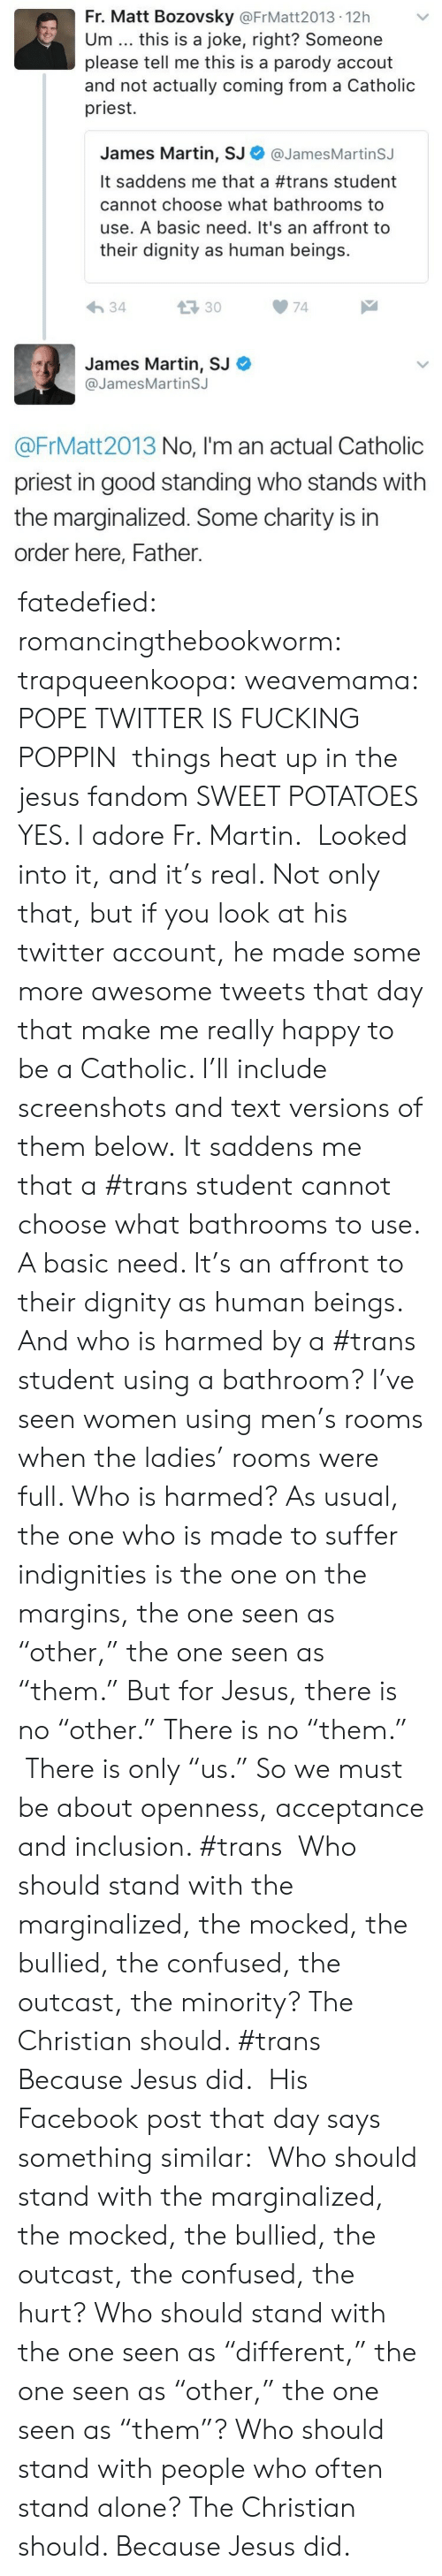 """Being Alone, Anaconda, and Confused: Fr. Matt Bozovsky @FrMatt2013 12h  Um this is a joke, right? Someone  please tell me this is a parody accout  and not actually coming from a Catholic  priest.  James Martin, SJ Φ @JamesMartinSJ  It saddens me that a #trans student  cannot choose what bathrooms to  use. A basic need. It's an affront to  their dignity as human beings.  34  133074  James Martin, SJ  @JamesMartinSJ  @FrMatt2013 No, I'm an actual Catholic  priest in good standing who stands with  the marginalized. Some charity is in  order here, Father. fatedefied: romancingthebookworm:  trapqueenkoopa:  weavemama: POPE TWITTER IS FUCKING POPPIN things heat up in the jesus fandom  SWEET POTATOES YES. I adore Fr. Martin.  Looked into it, and it's real. Not only that, but if you look at his twitter account, he made some more awesome tweets that day that make me really happy to be a Catholic. I'll include screenshots and text versions of them below. It saddens me that a #trans student cannot choose what bathrooms to use. A basic need. It's an affront to their dignity as human beings. And who is harmed by a #trans student using a bathroom? I've seen women using men's rooms when the ladies' rooms were full. Who is harmed? As usual, the one who is made to suffer indignities is the one on the margins, the one seen as """"other,"""" the one seen as """"them."""" But for Jesus, there is no """"other."""" There is no """"them."""" There is only """"us."""" So we must be about openness, acceptance and inclusion. #trans   Who should stand with the marginalized, the mocked, the bullied, the confused, the outcast, the minority? The Christian should. #trans     Because Jesus did. His Facebook post that day says something similar:  Who should stand with the marginalized, the mocked, the bullied, the outcast, the confused, the hurt? Who should stand with the one seen as """"different,"""" the one seen as """"other,"""" the one seen as """"them""""? Who should stand with people who often stand alone? The Christian should. Because Je"""